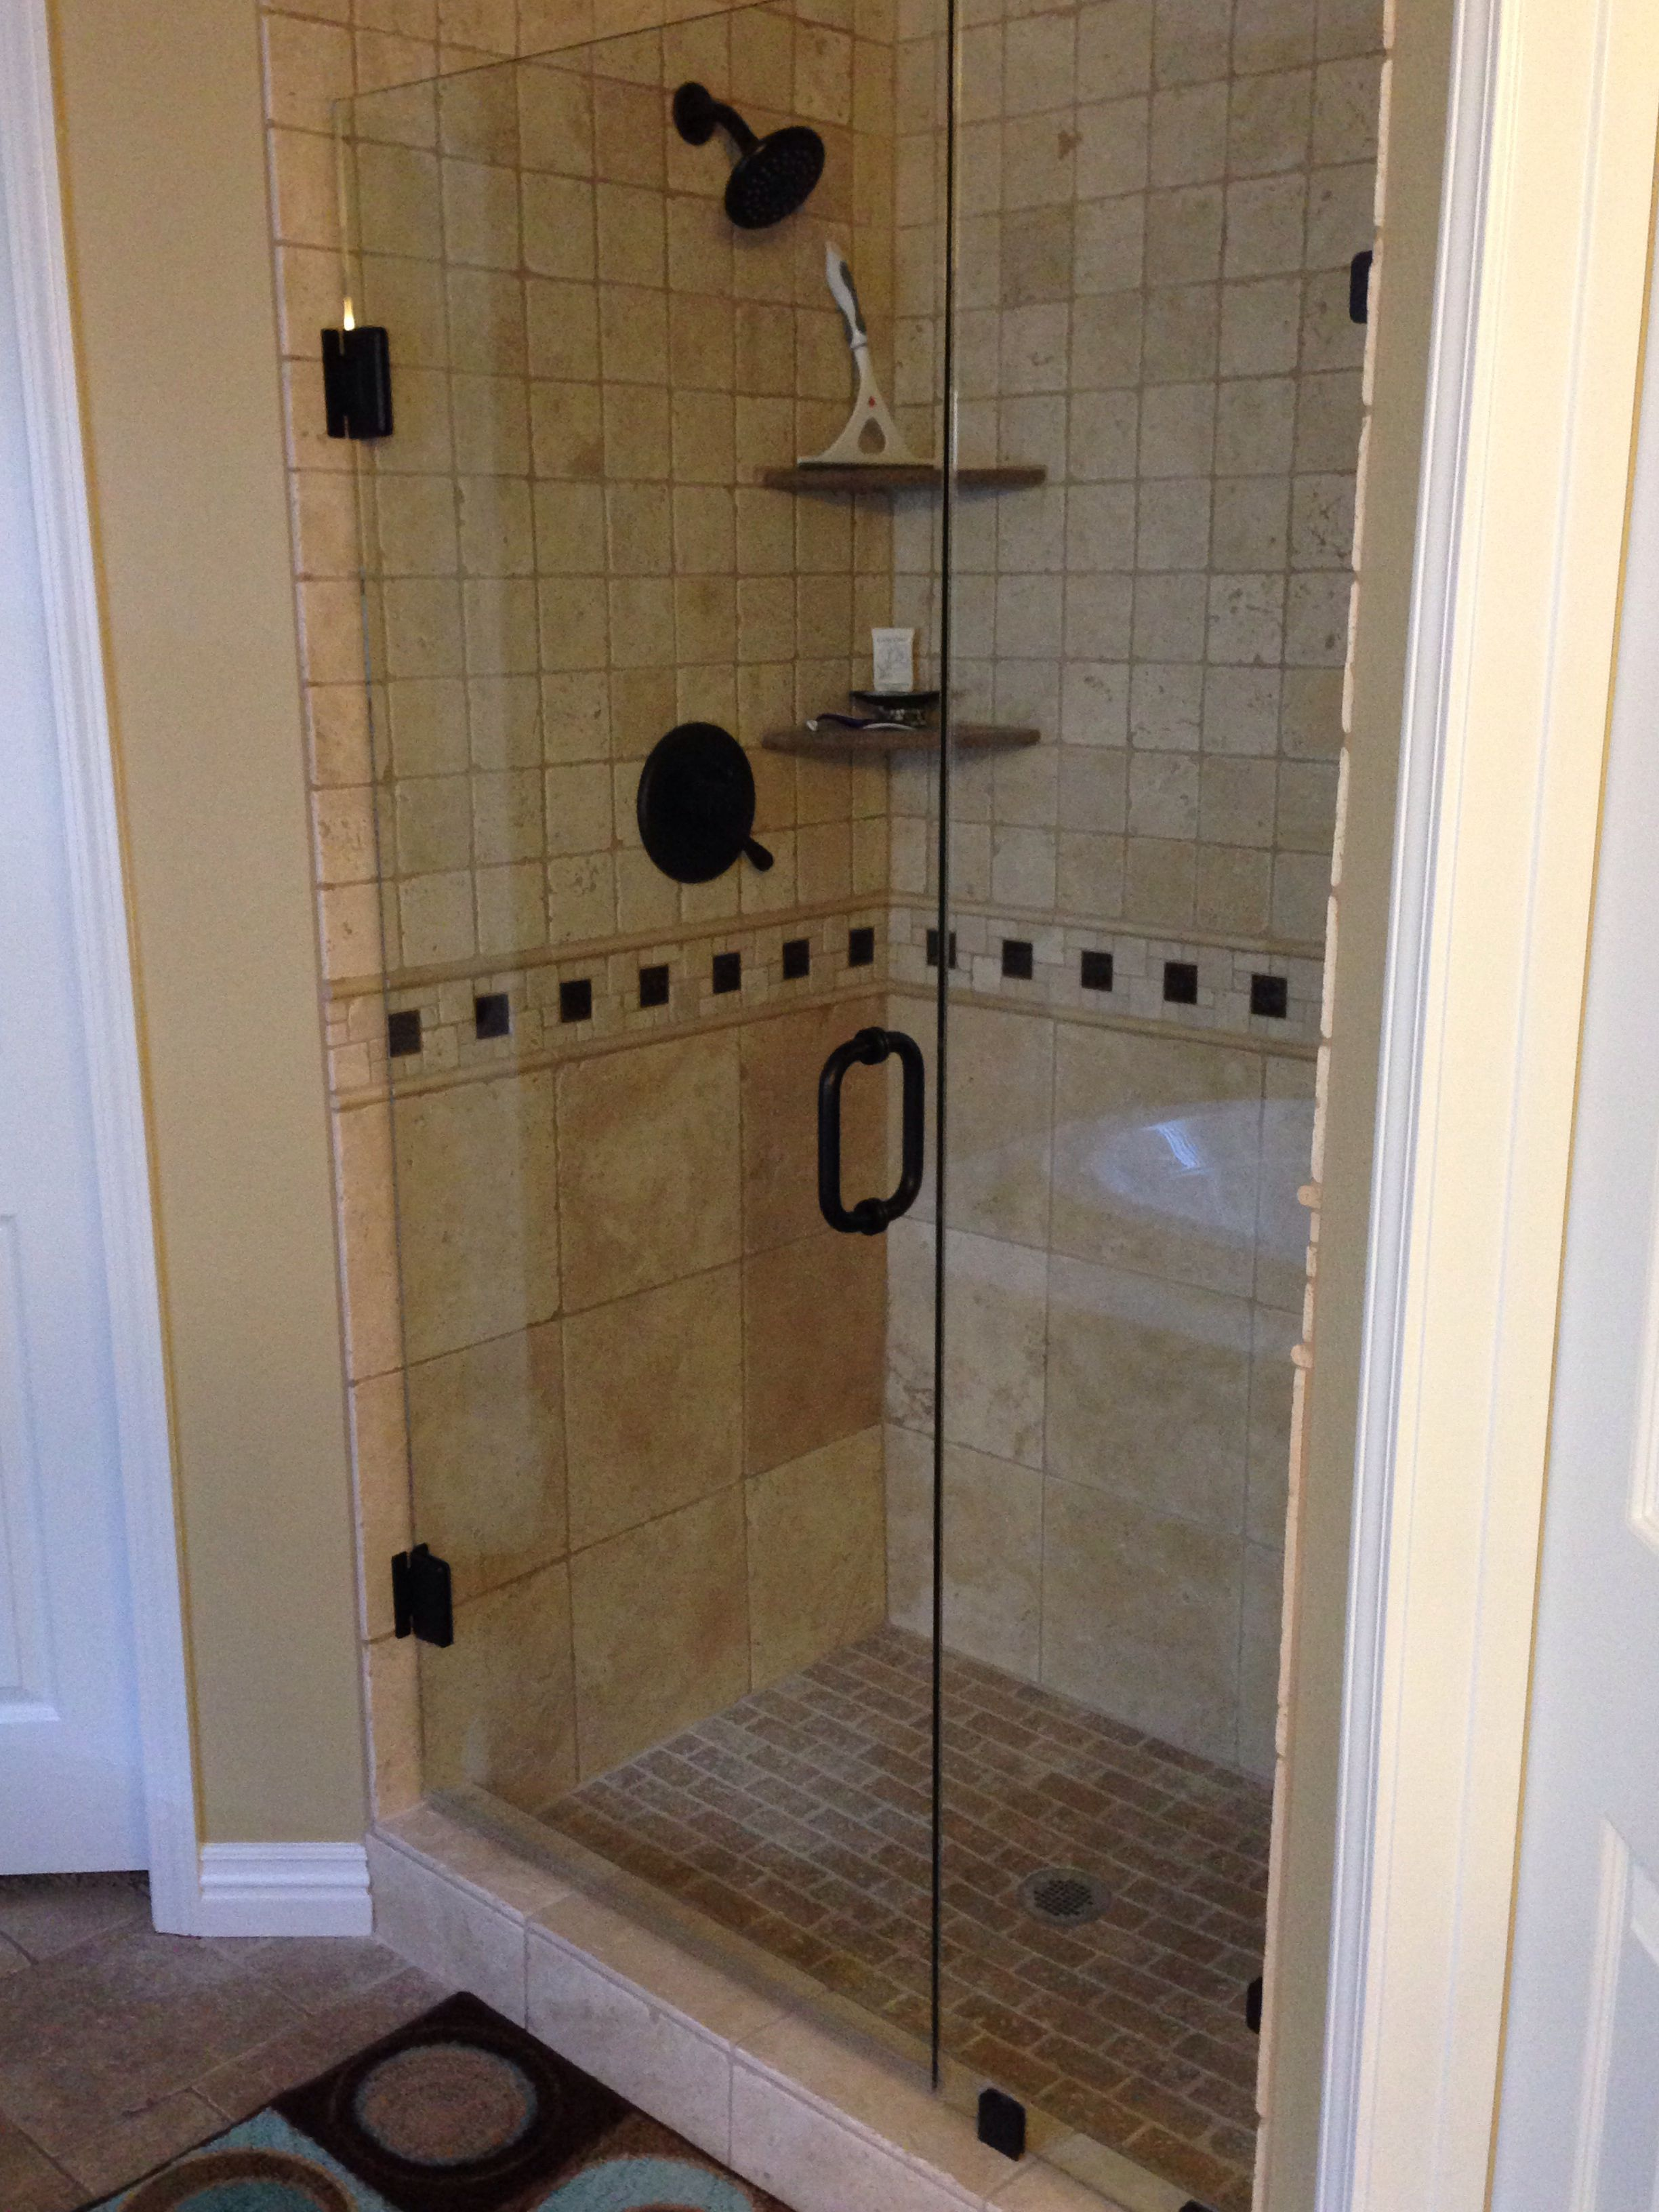 Removed Insert And Had New Shower Built Frameless